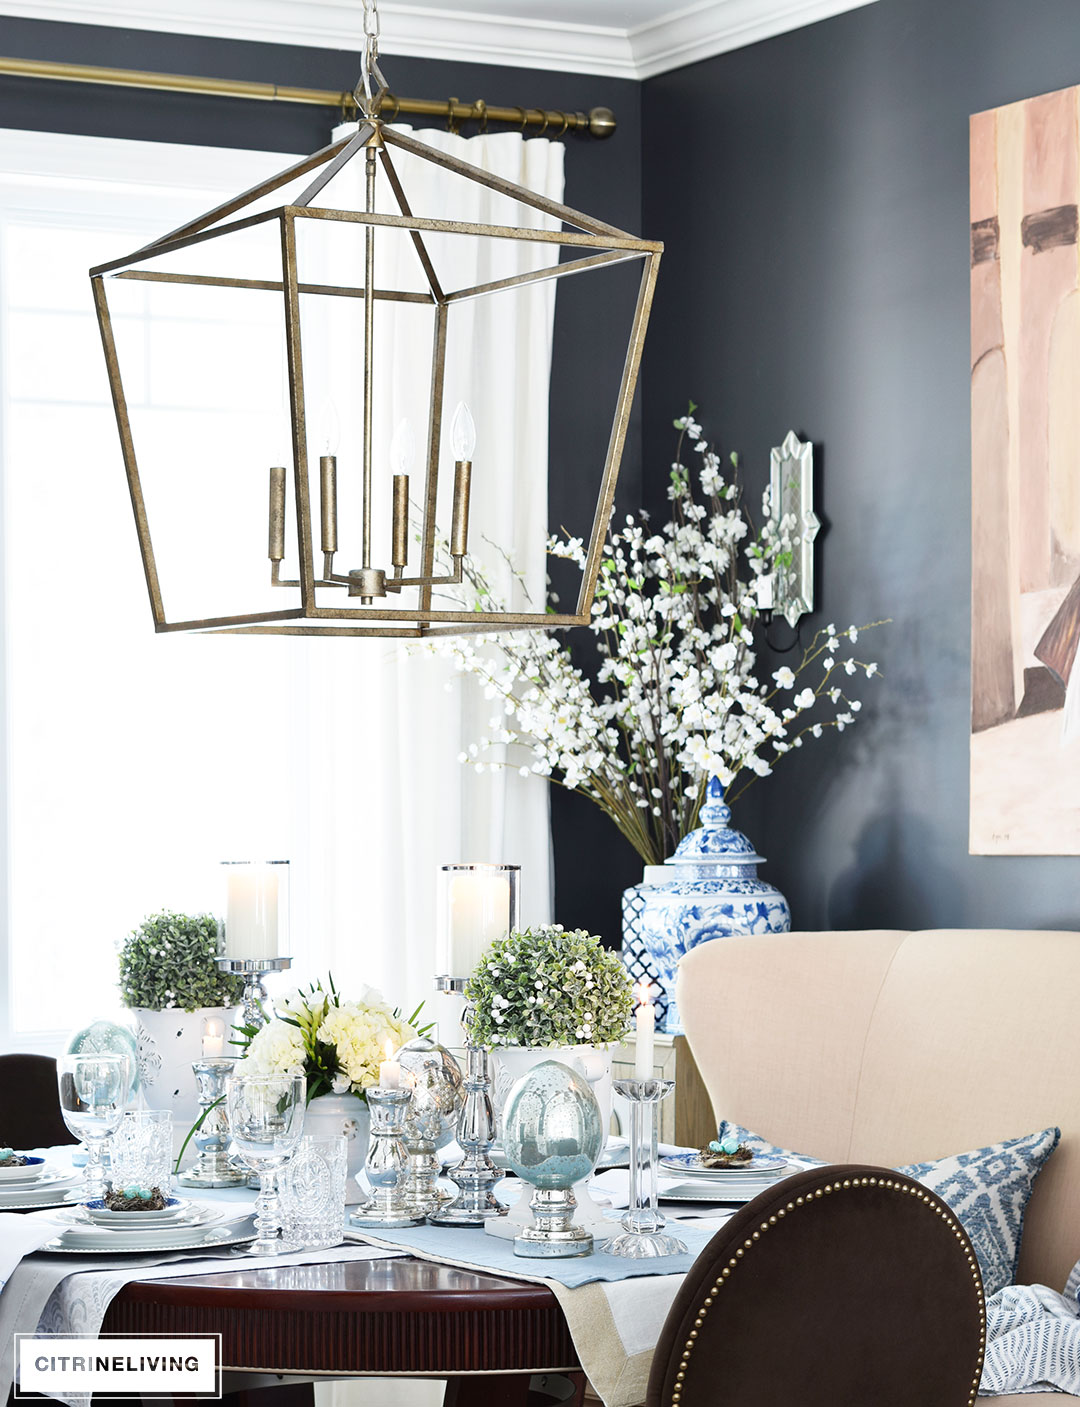 Modern, lantern style pendant chandelier hangs over an elegant Easter tablescape.